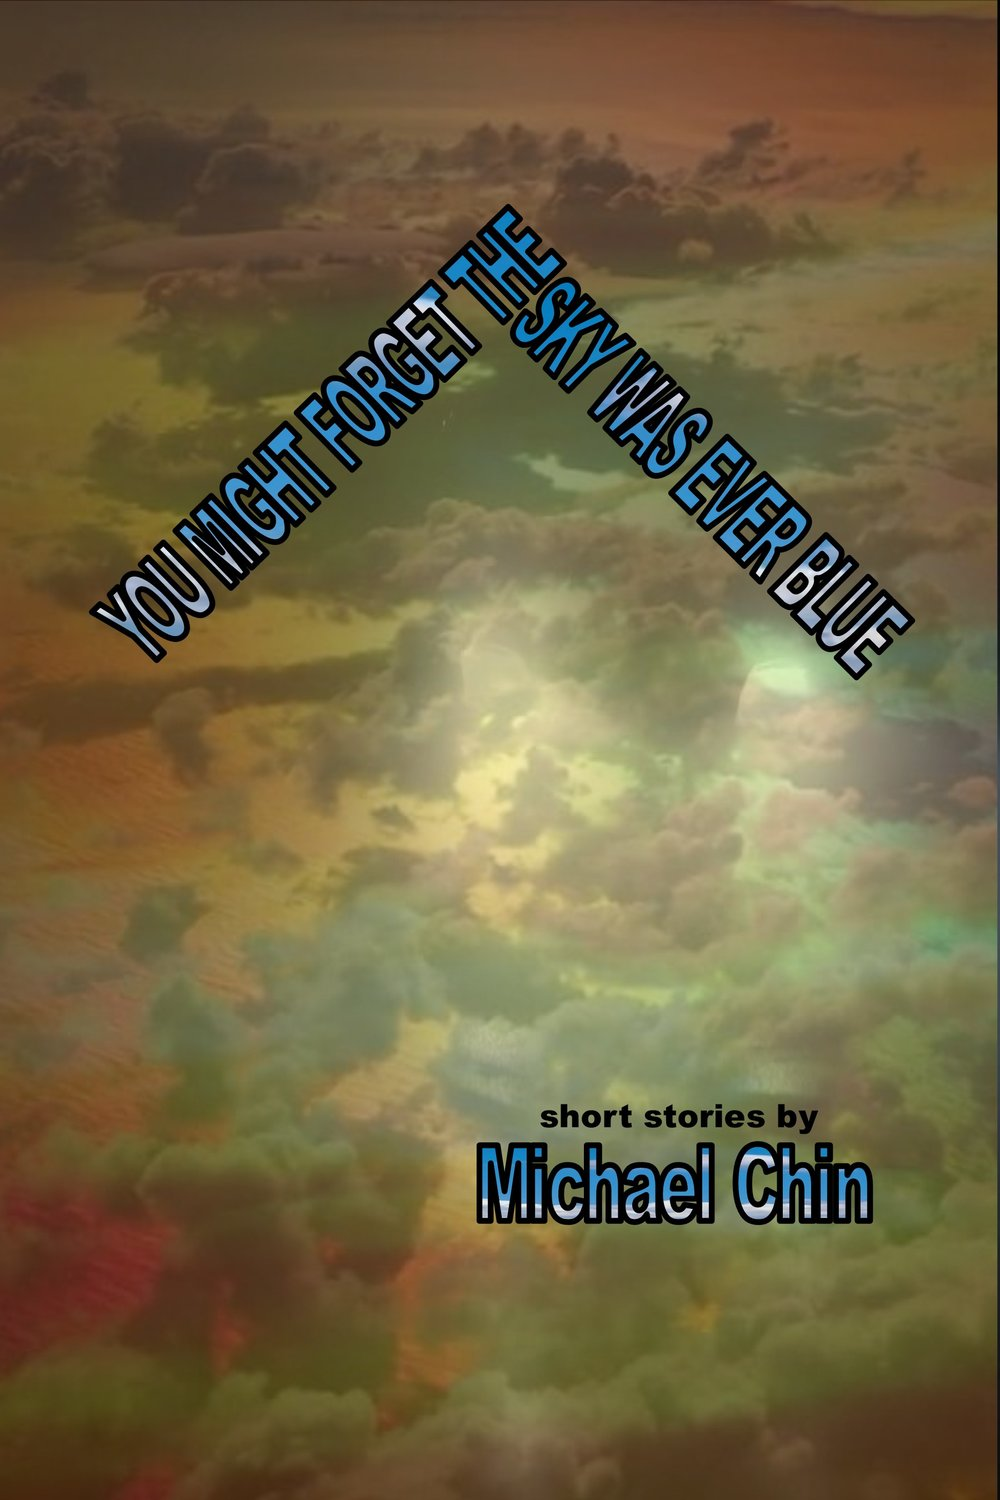 - You Might Forget the Sky was Ever Blue (forthcoming, September 2019) includes stories about third grade teacher in Baltimore trying to make sense of the 2016 election campaign to students, a teenage sexual assault survivor making his way through a changed world, and a boy is raised to believe he's Hulk Hogan's little brother. This book includes experiments in form with a social conscience, including work originally published in Hobart, Iron Horse Literary Review, Bayou Magazine, Front Porch, Waccamaw, Prime Number Magazine, Drunk Monkeys, Random Sample Review, and Extract[s]. It will be published by Duck Lake Books.